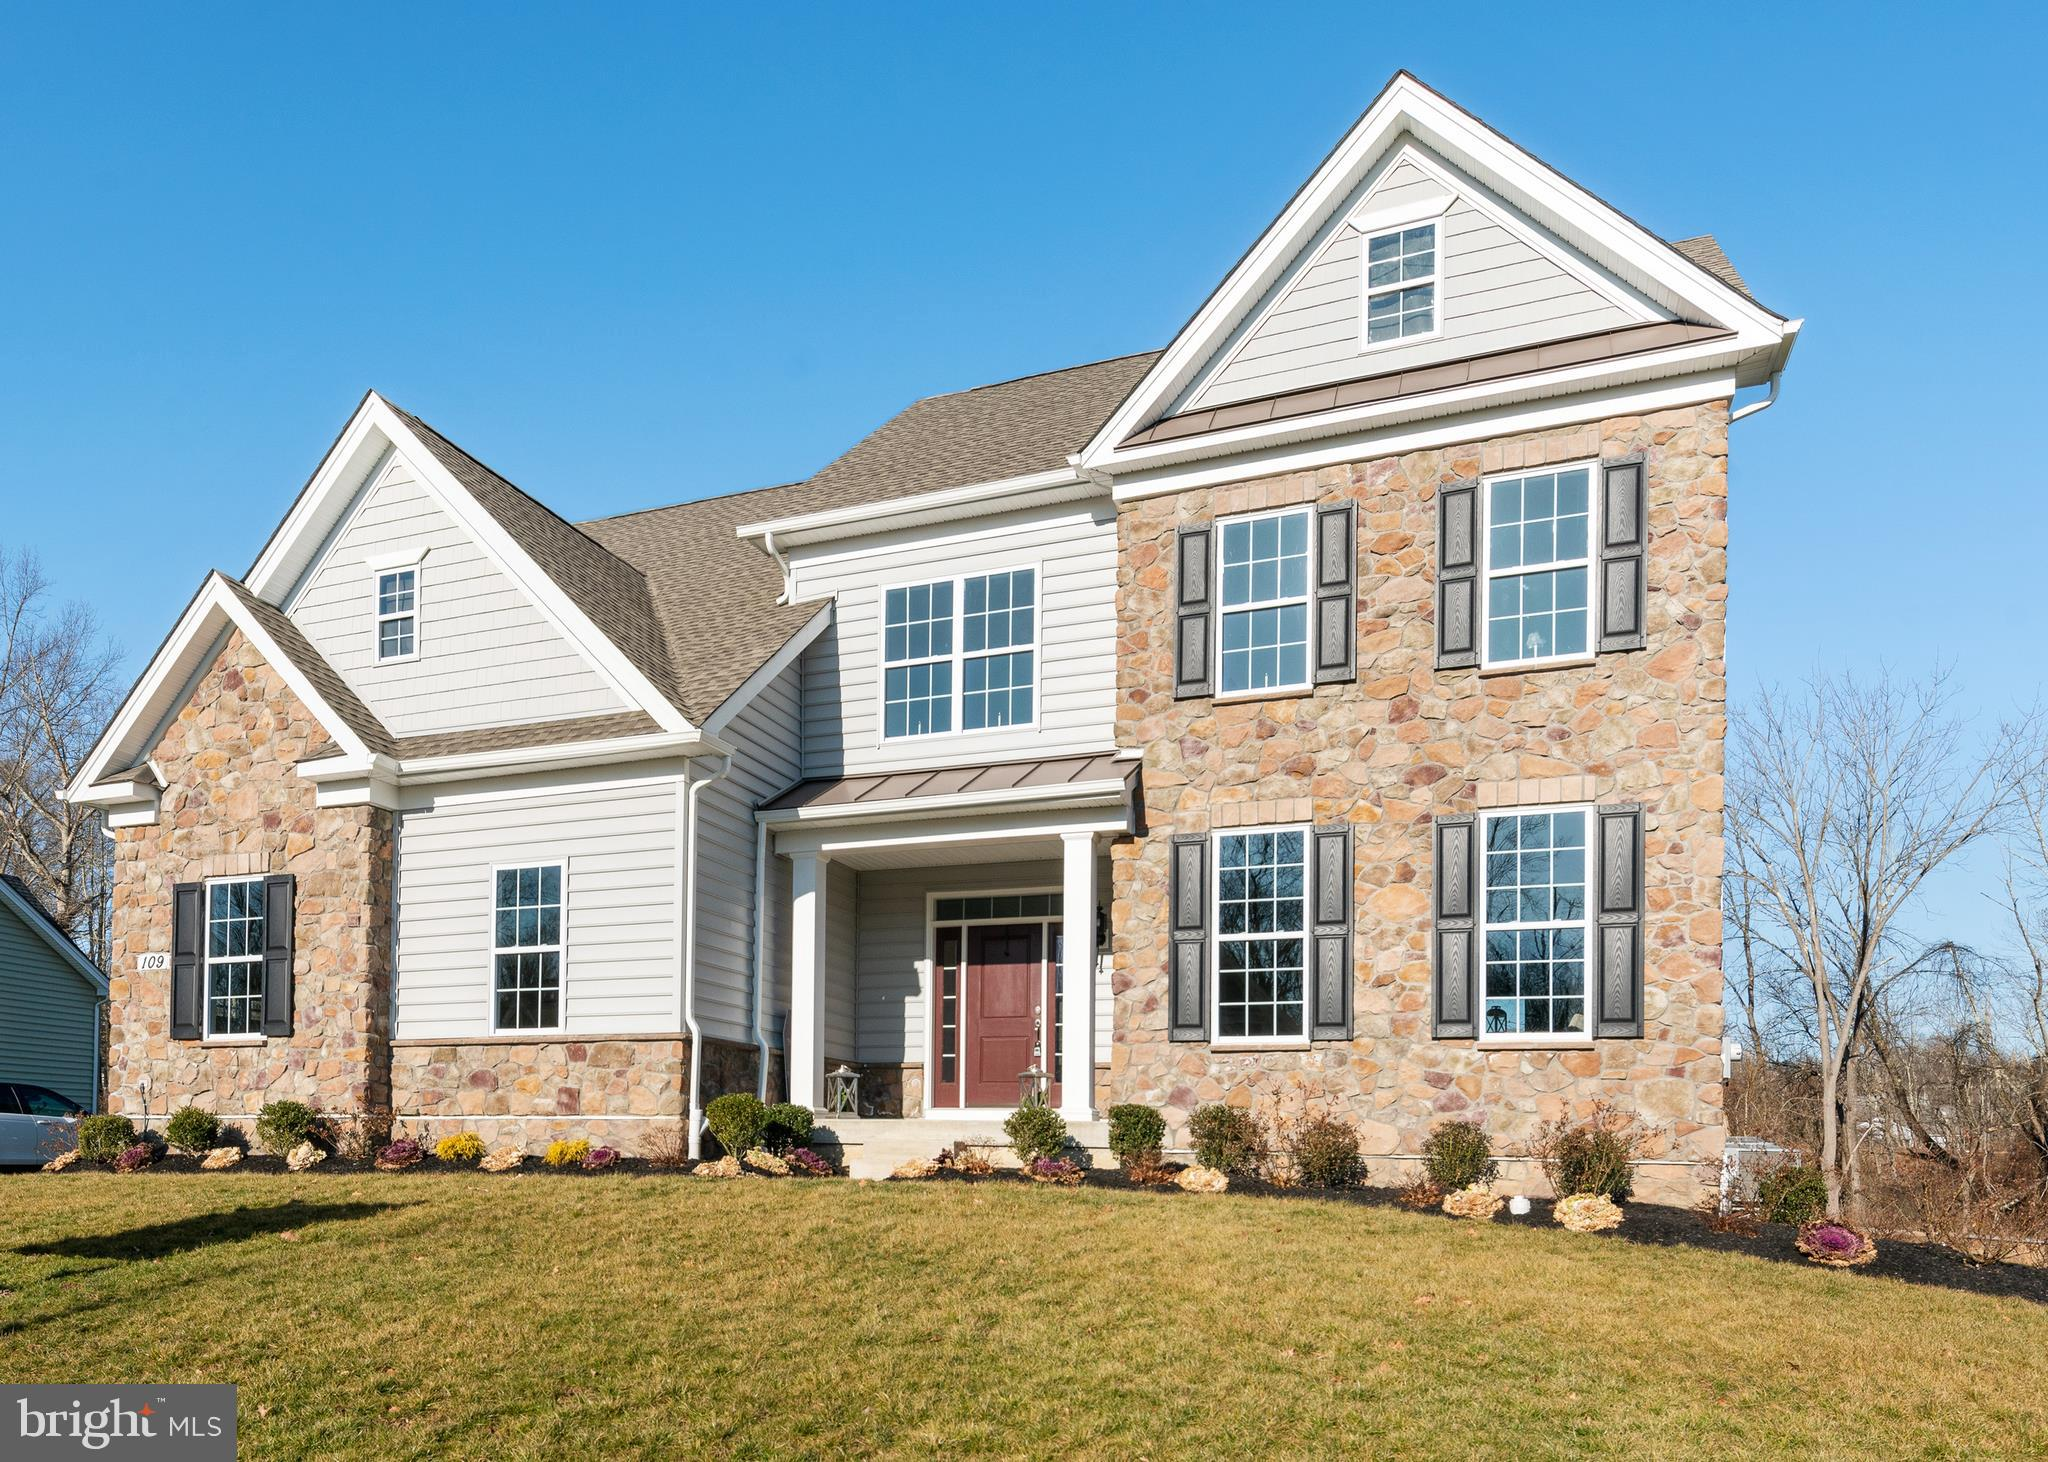 109 HAINES COURT, CHALFONT, PA 18914